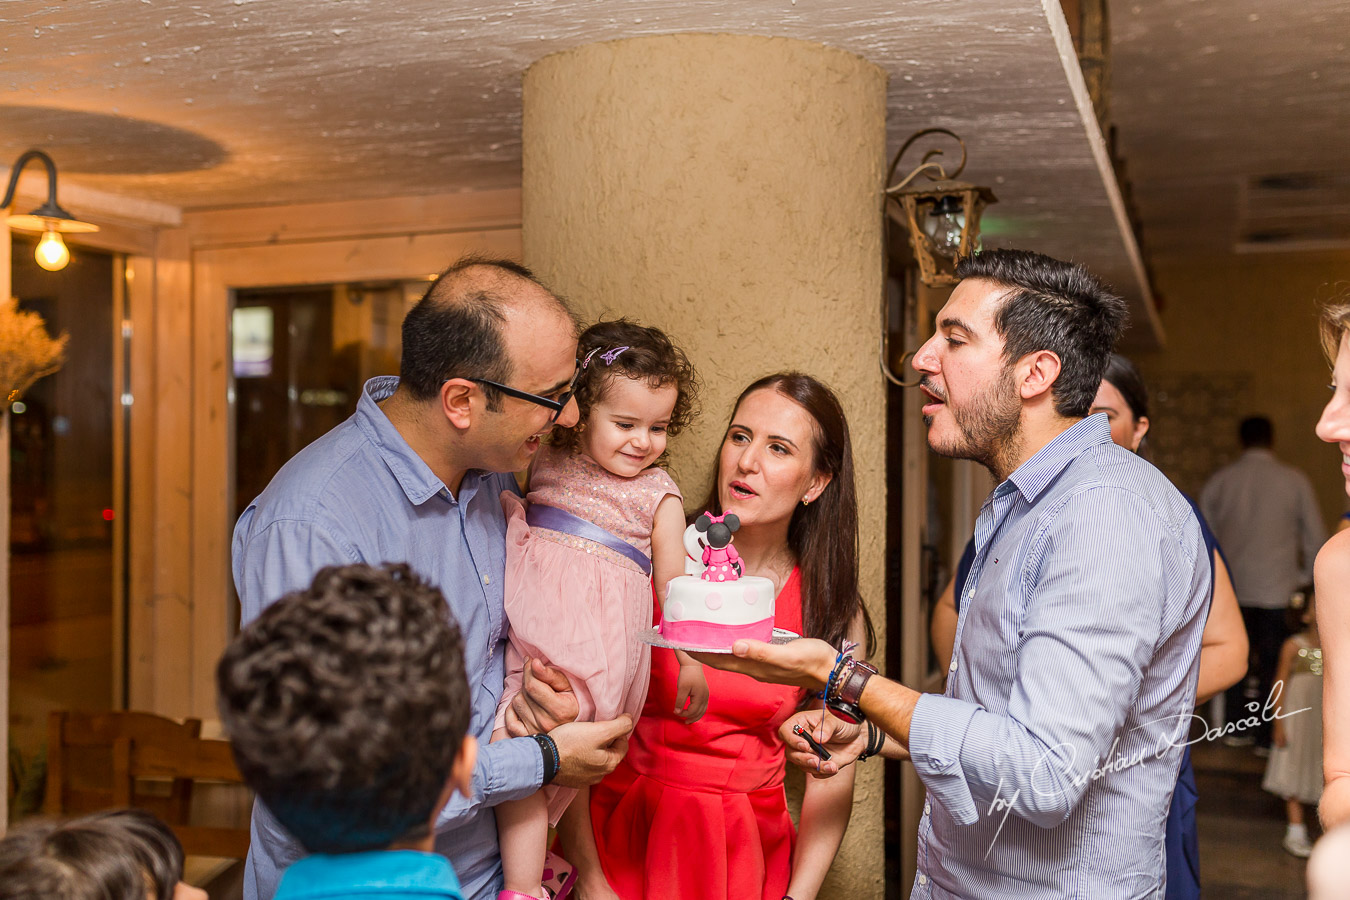 Baptism Photograher in Nicosia - Chrisanti's Christening by Cristian Dascalu - 38